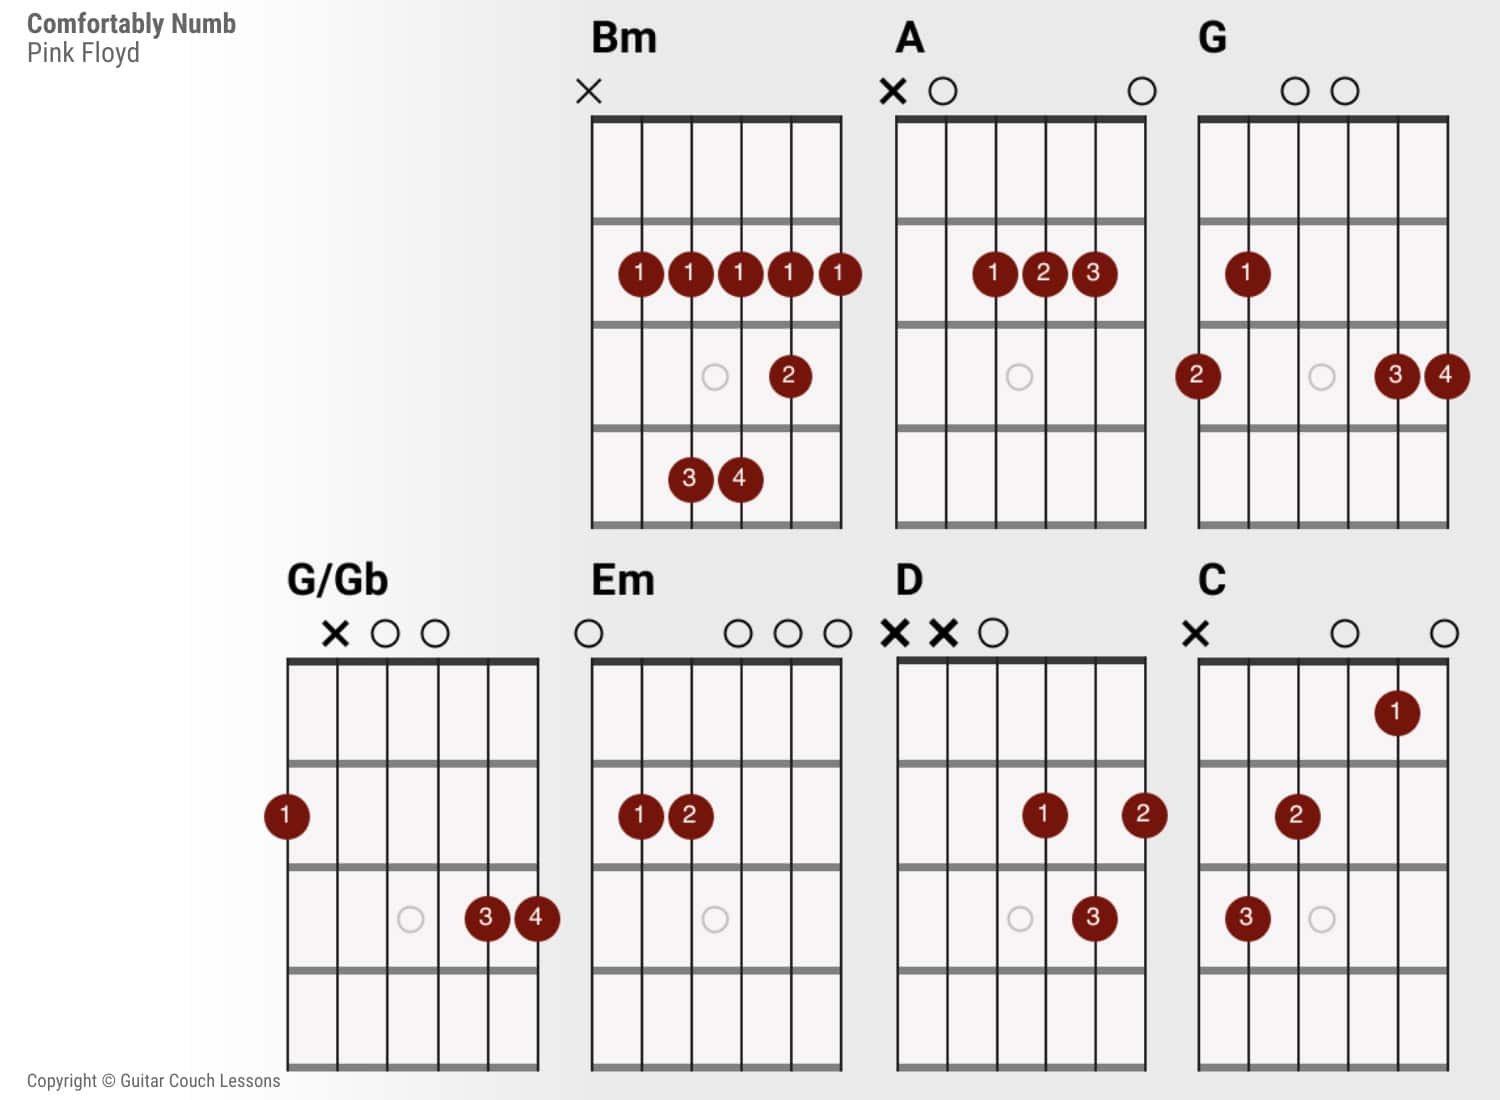 How To Play Comfortably Numb | Pink Floyd | Guitar Couch Lessons